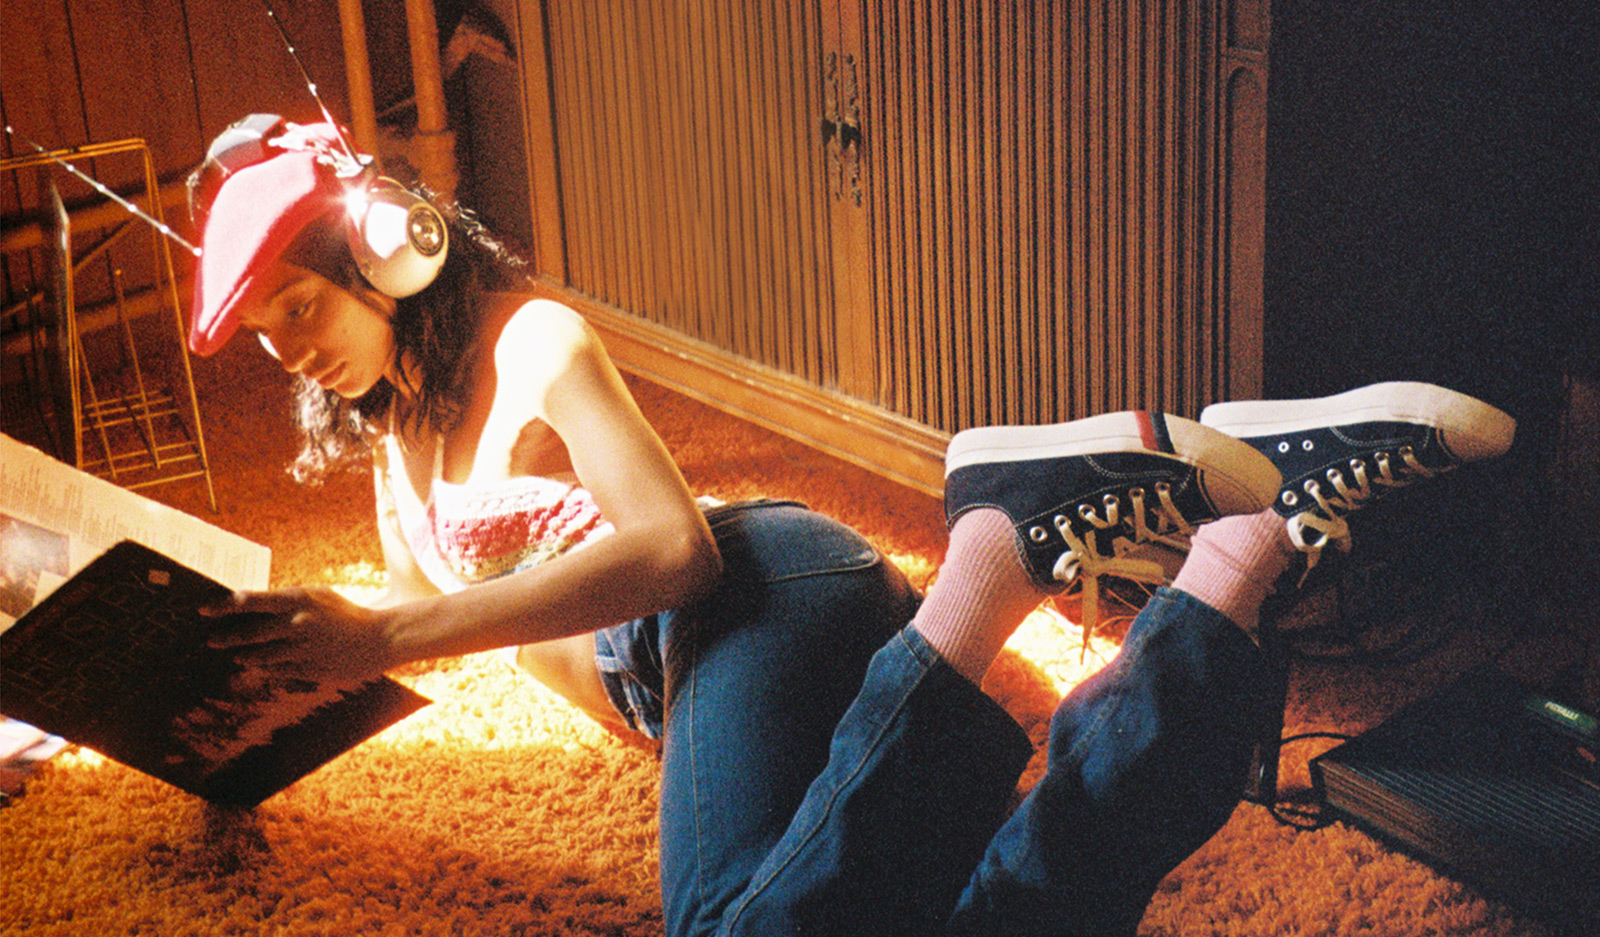 A female grooving to the tunes in her headphones, while chilling on the floor, wearing a pair of ProKeds on her feet.